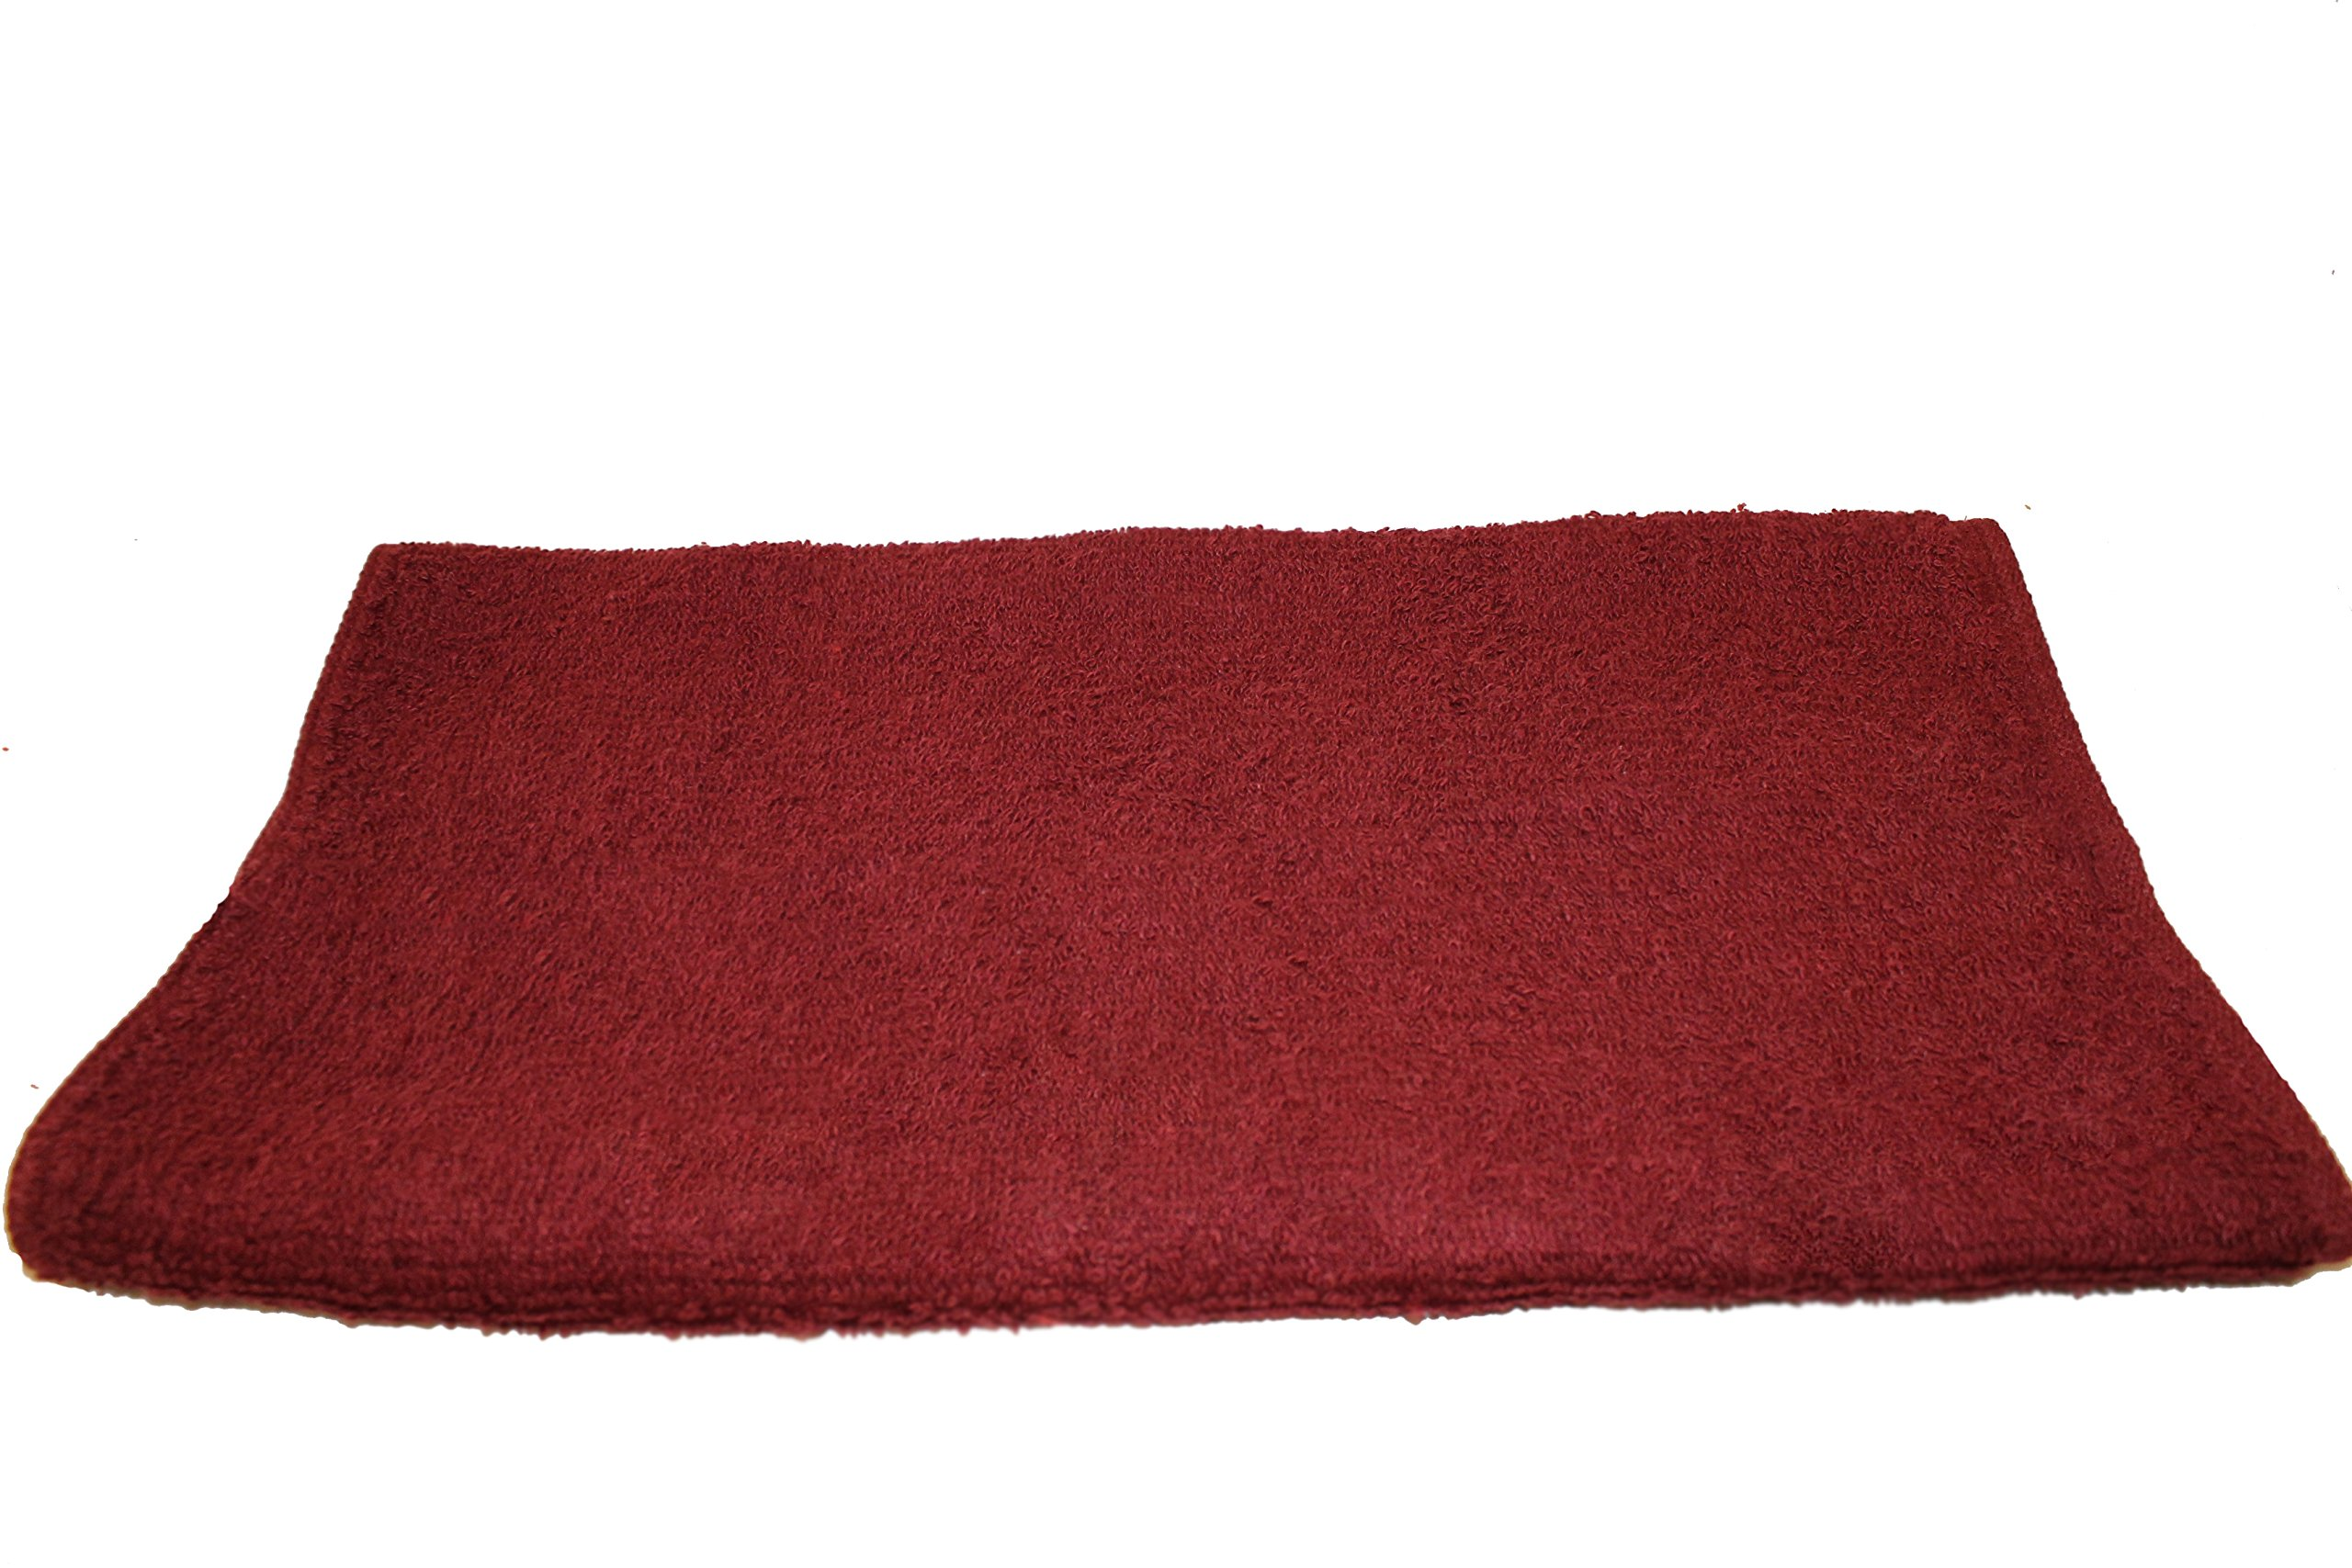 FREE SHIPPING 12 DOZEN Mr.Towels Imports Premium 100% Cotton Cleaning Towel 16'' X 27'' - Burgundy